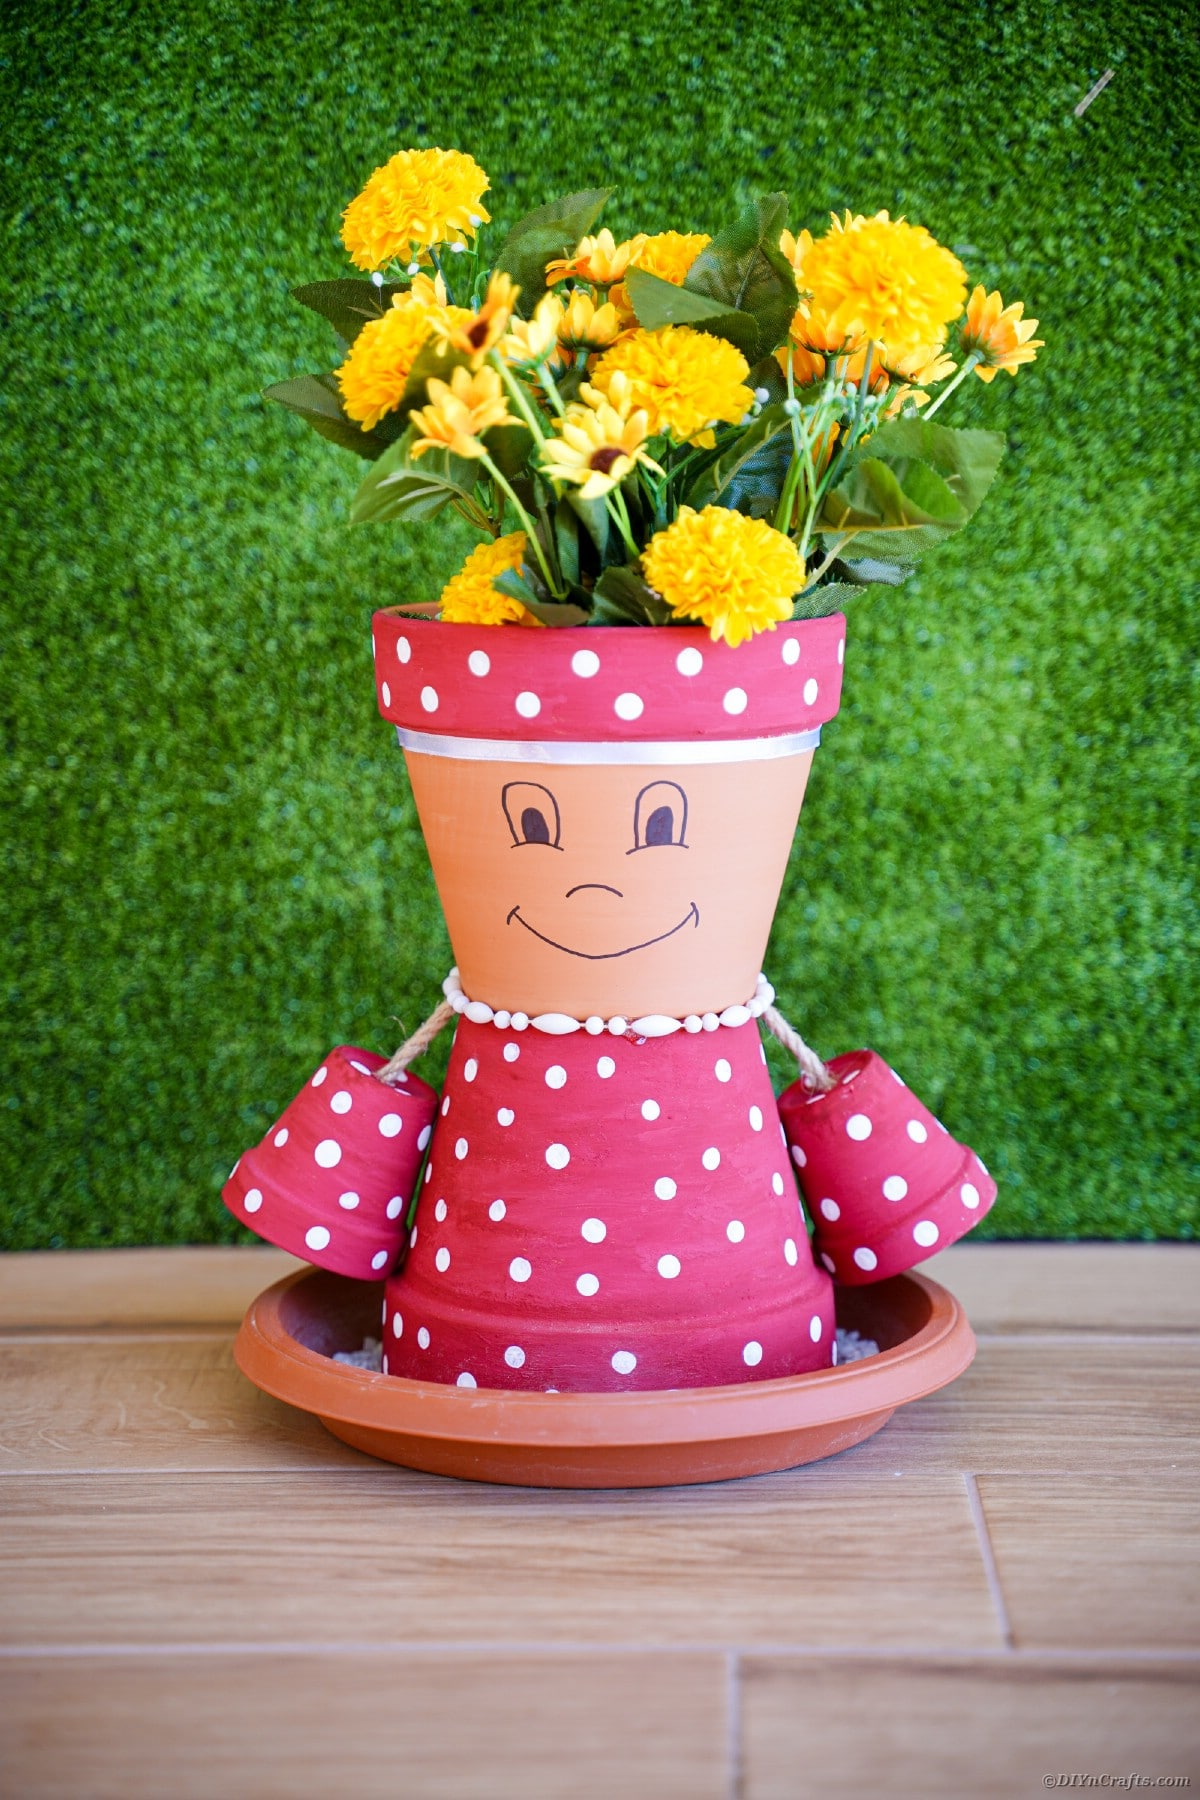 Flower pot girl on table in front of grass